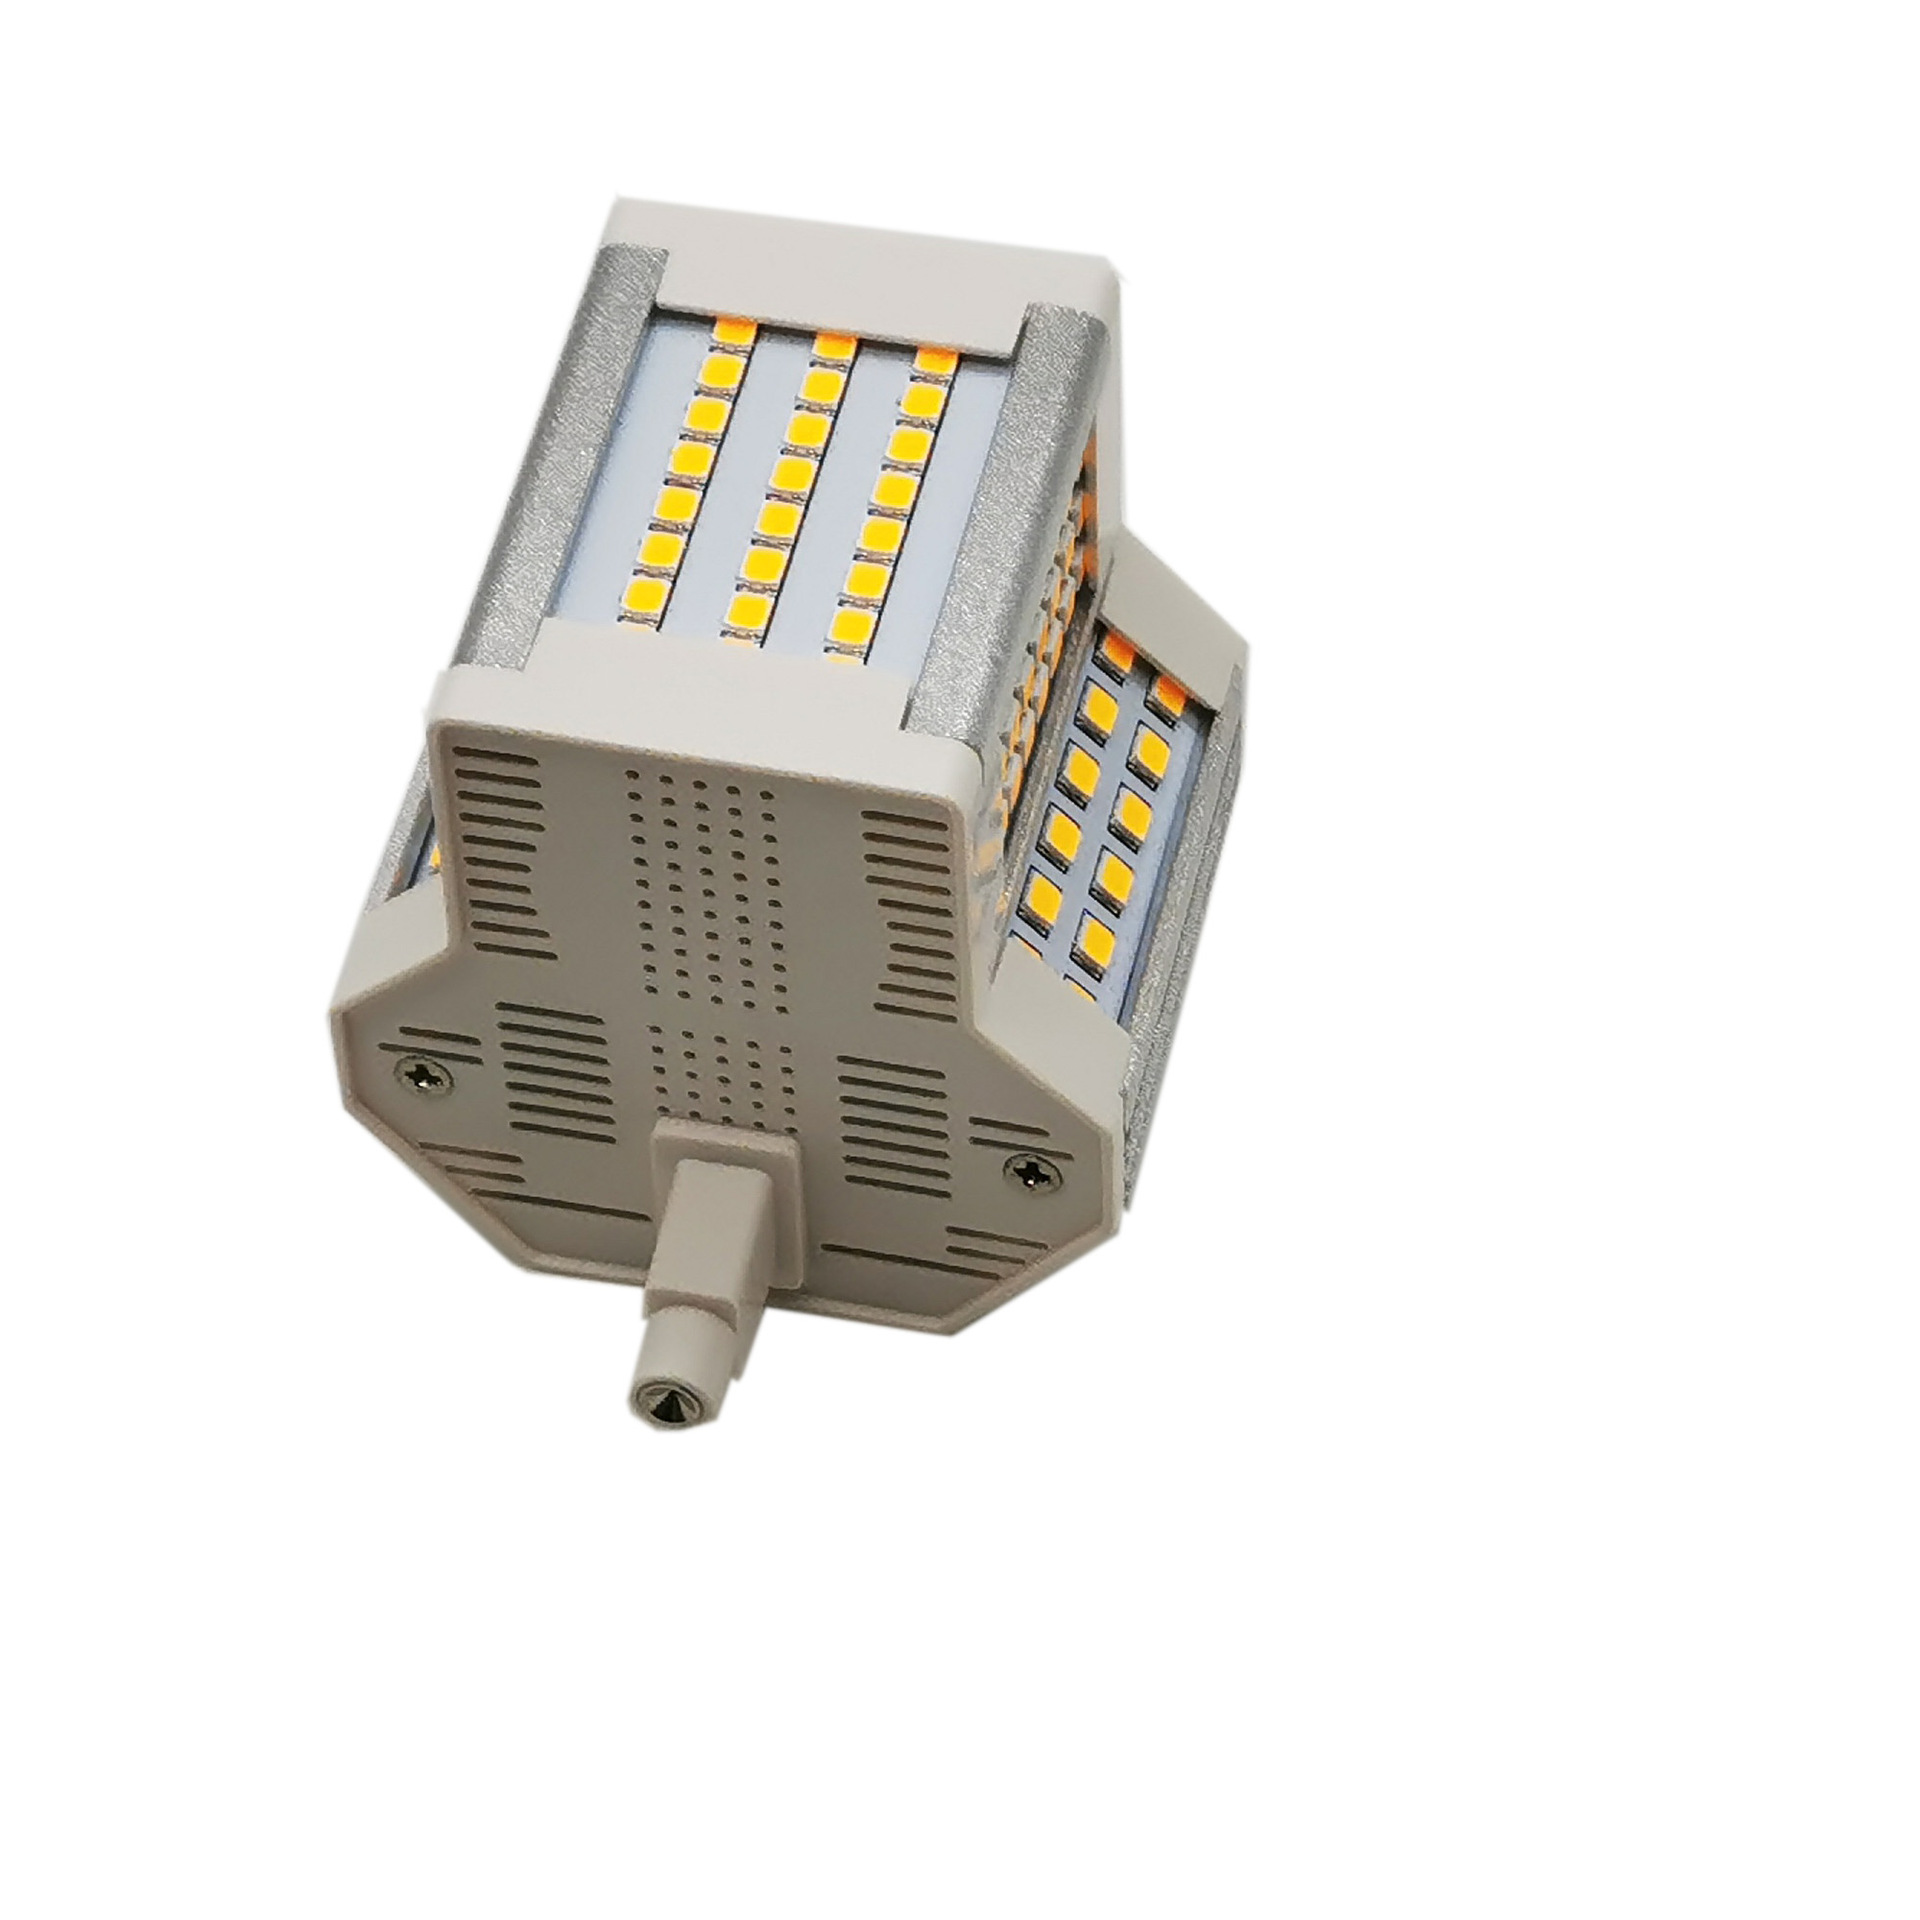 15W 78MM dimmable led R7S light 78mm led R7S horizontal plug light replace 150W